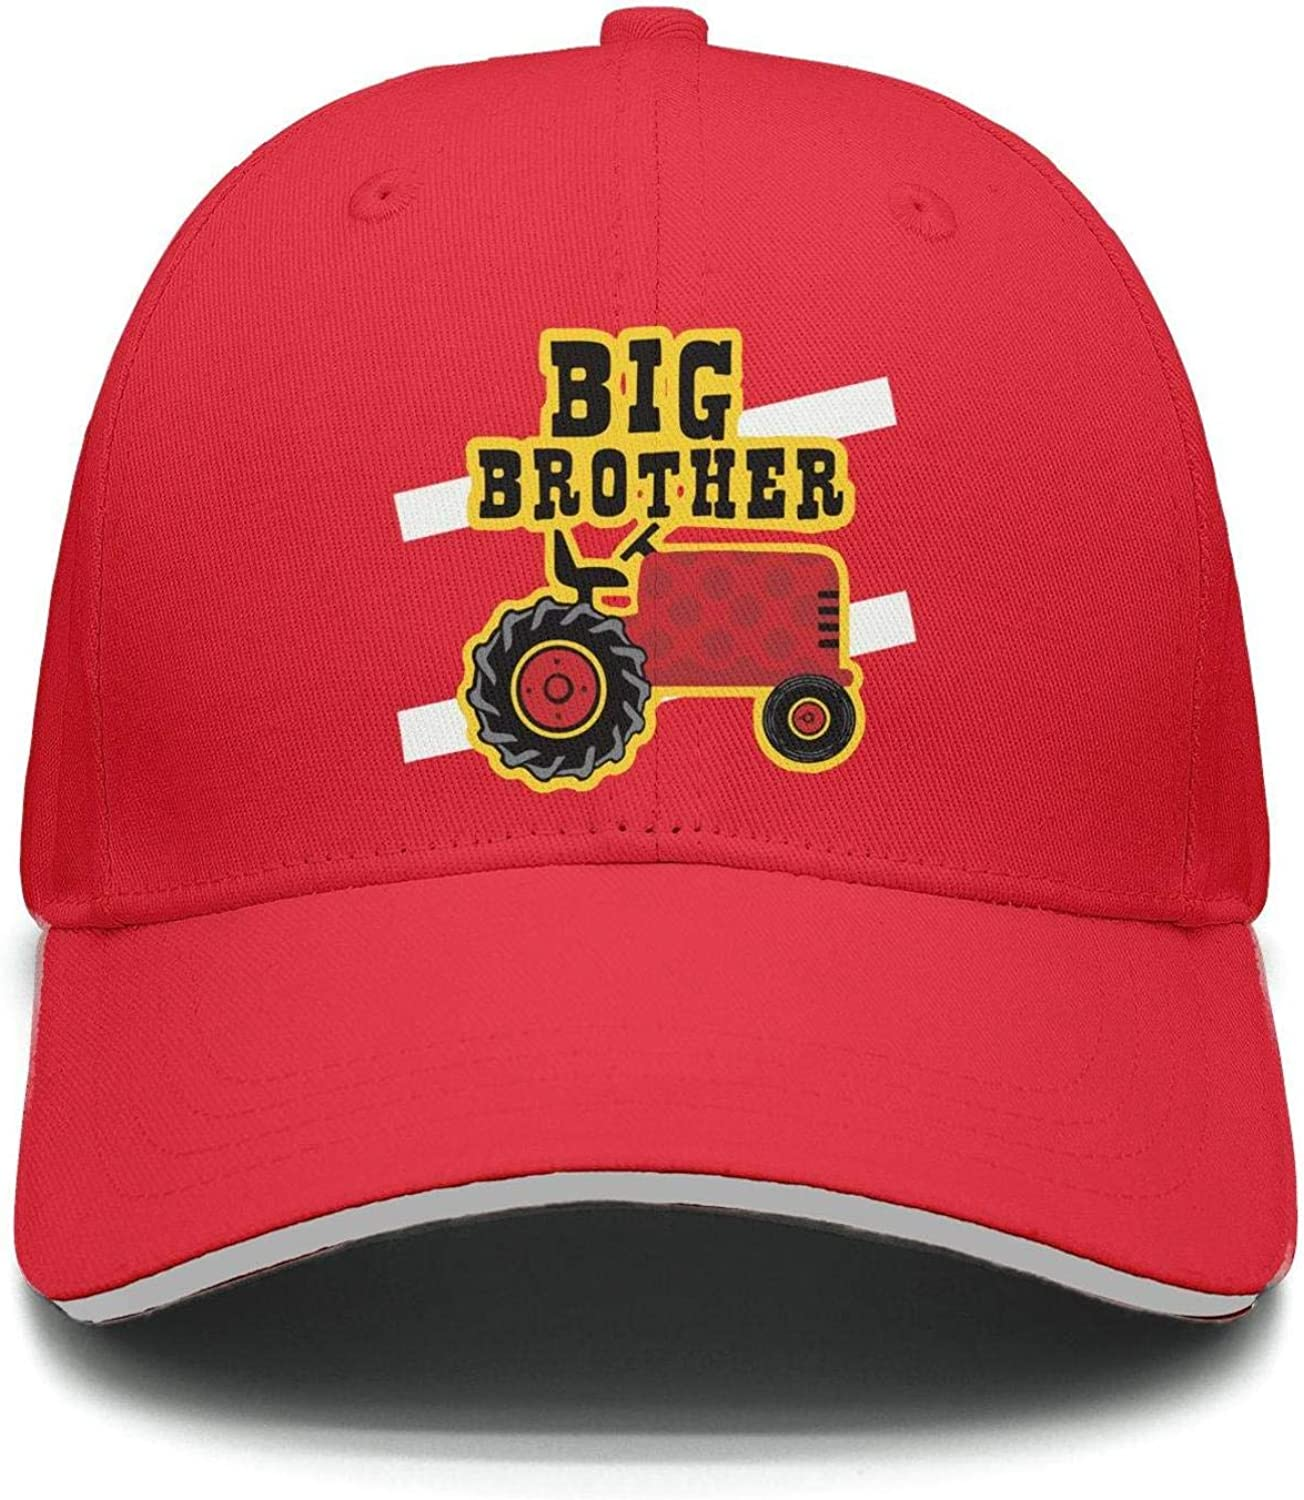 Learning Candy Big Brother Tractor Baseball Hat Fitted Unisex Solid Color Summer Sun Hat Sports Hat for Mens Womens One Size